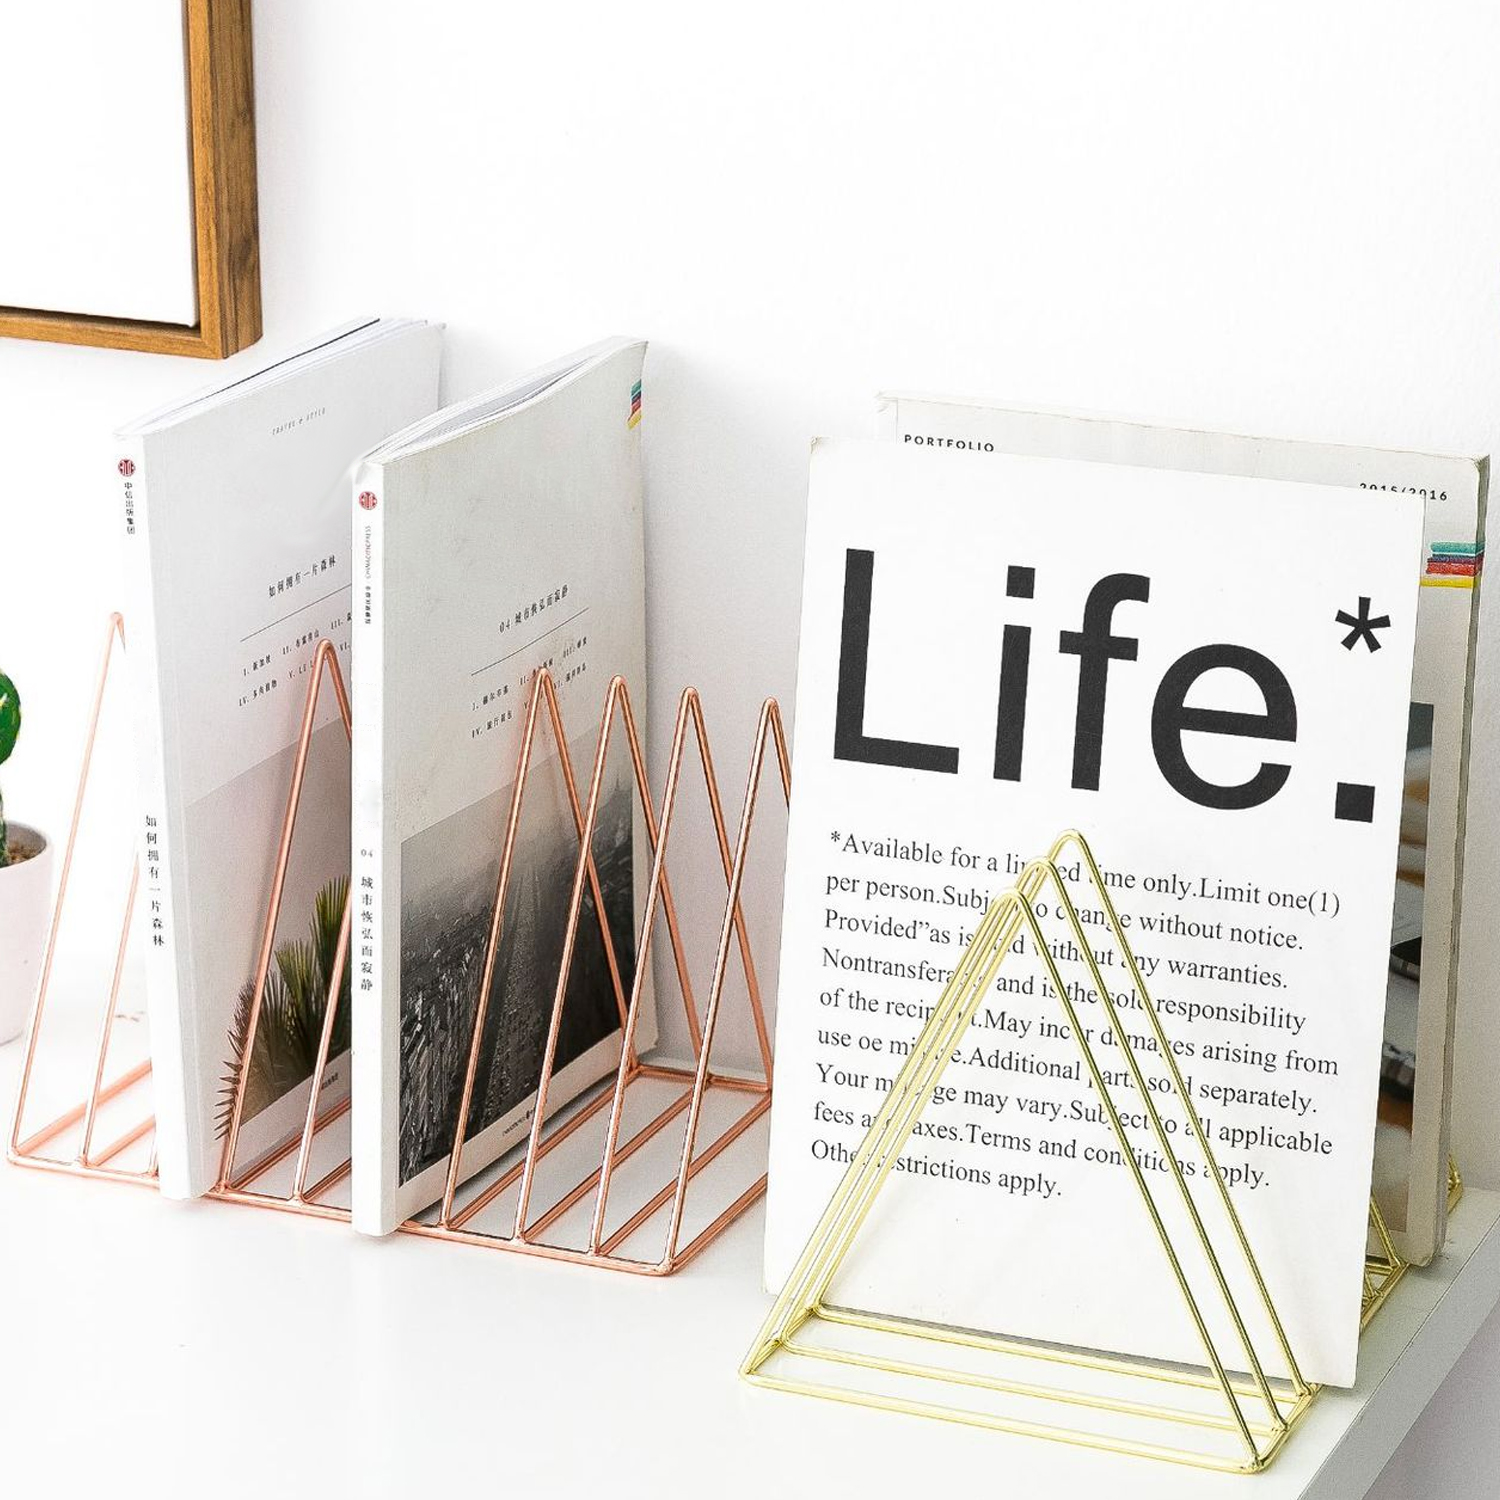 9 Slot Triangle Magazine Rack Desktop Iron Wire Book Record File Holder Storage Organizer Bookshelf For Home School Office Decor